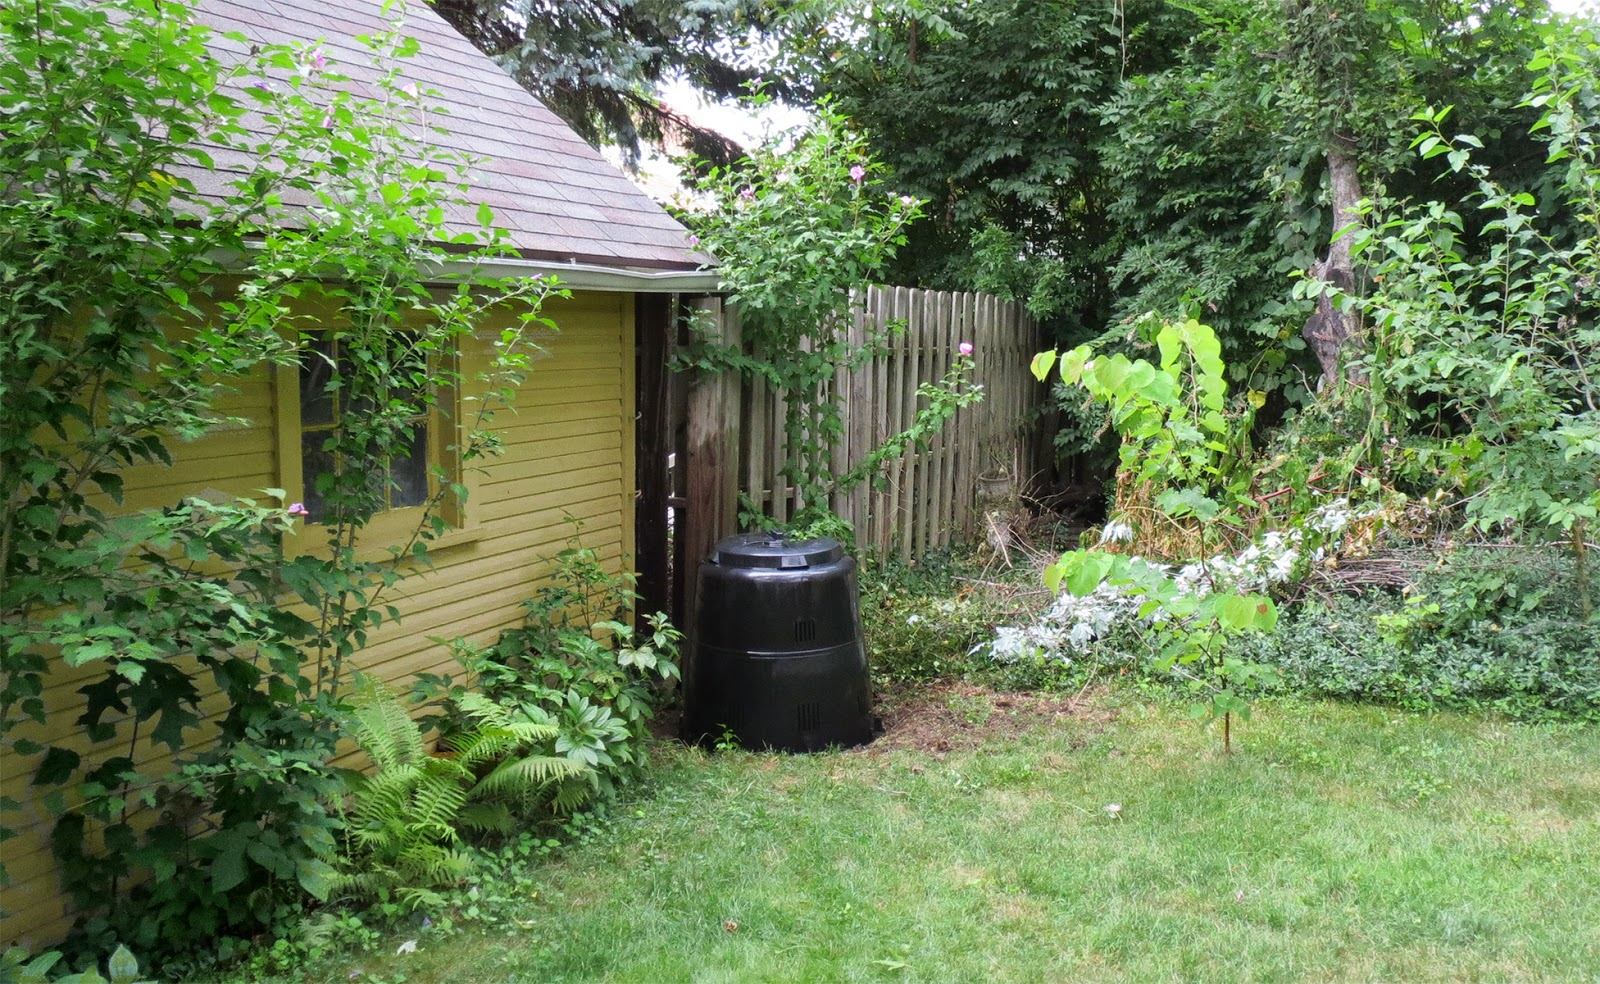 confessions of a composter location location location